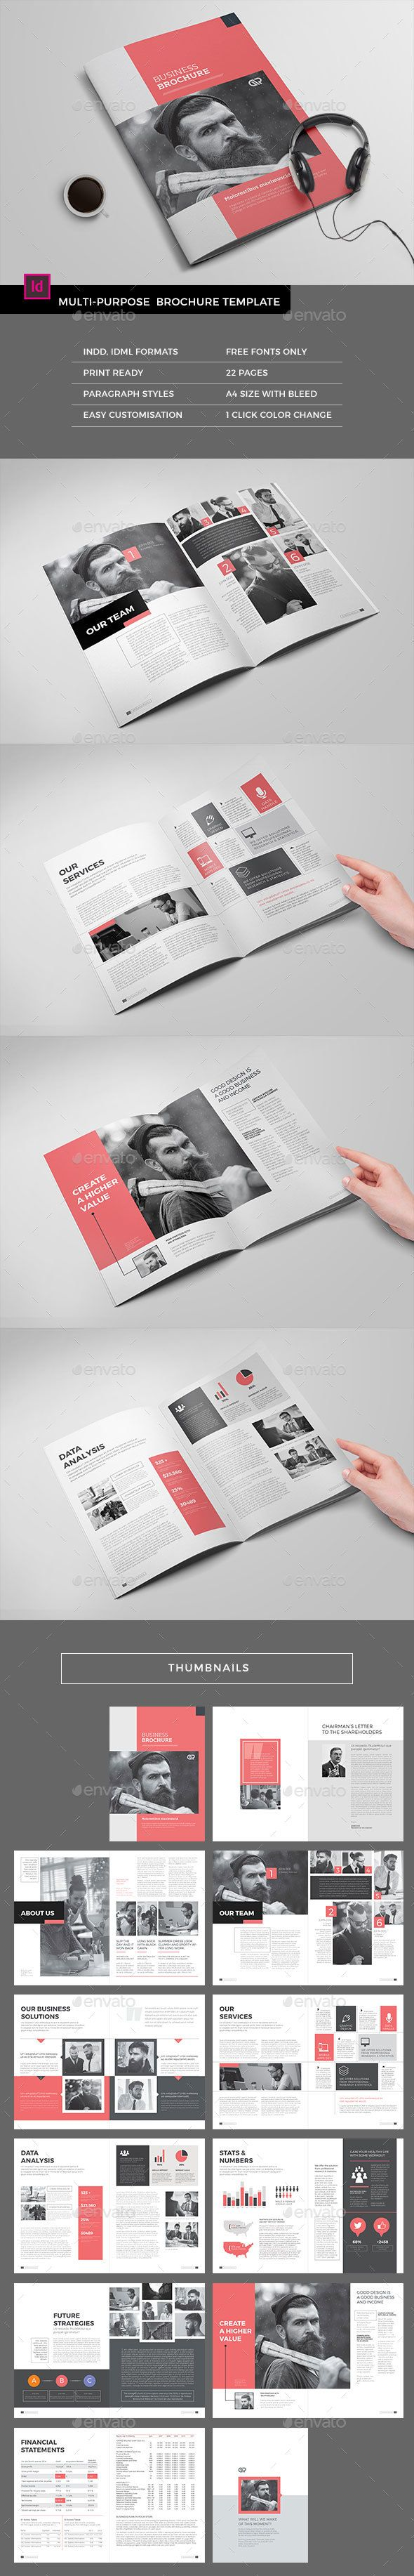 The Corporate Brochure Template InDesign INDD - 22 Pages, 300 DPI